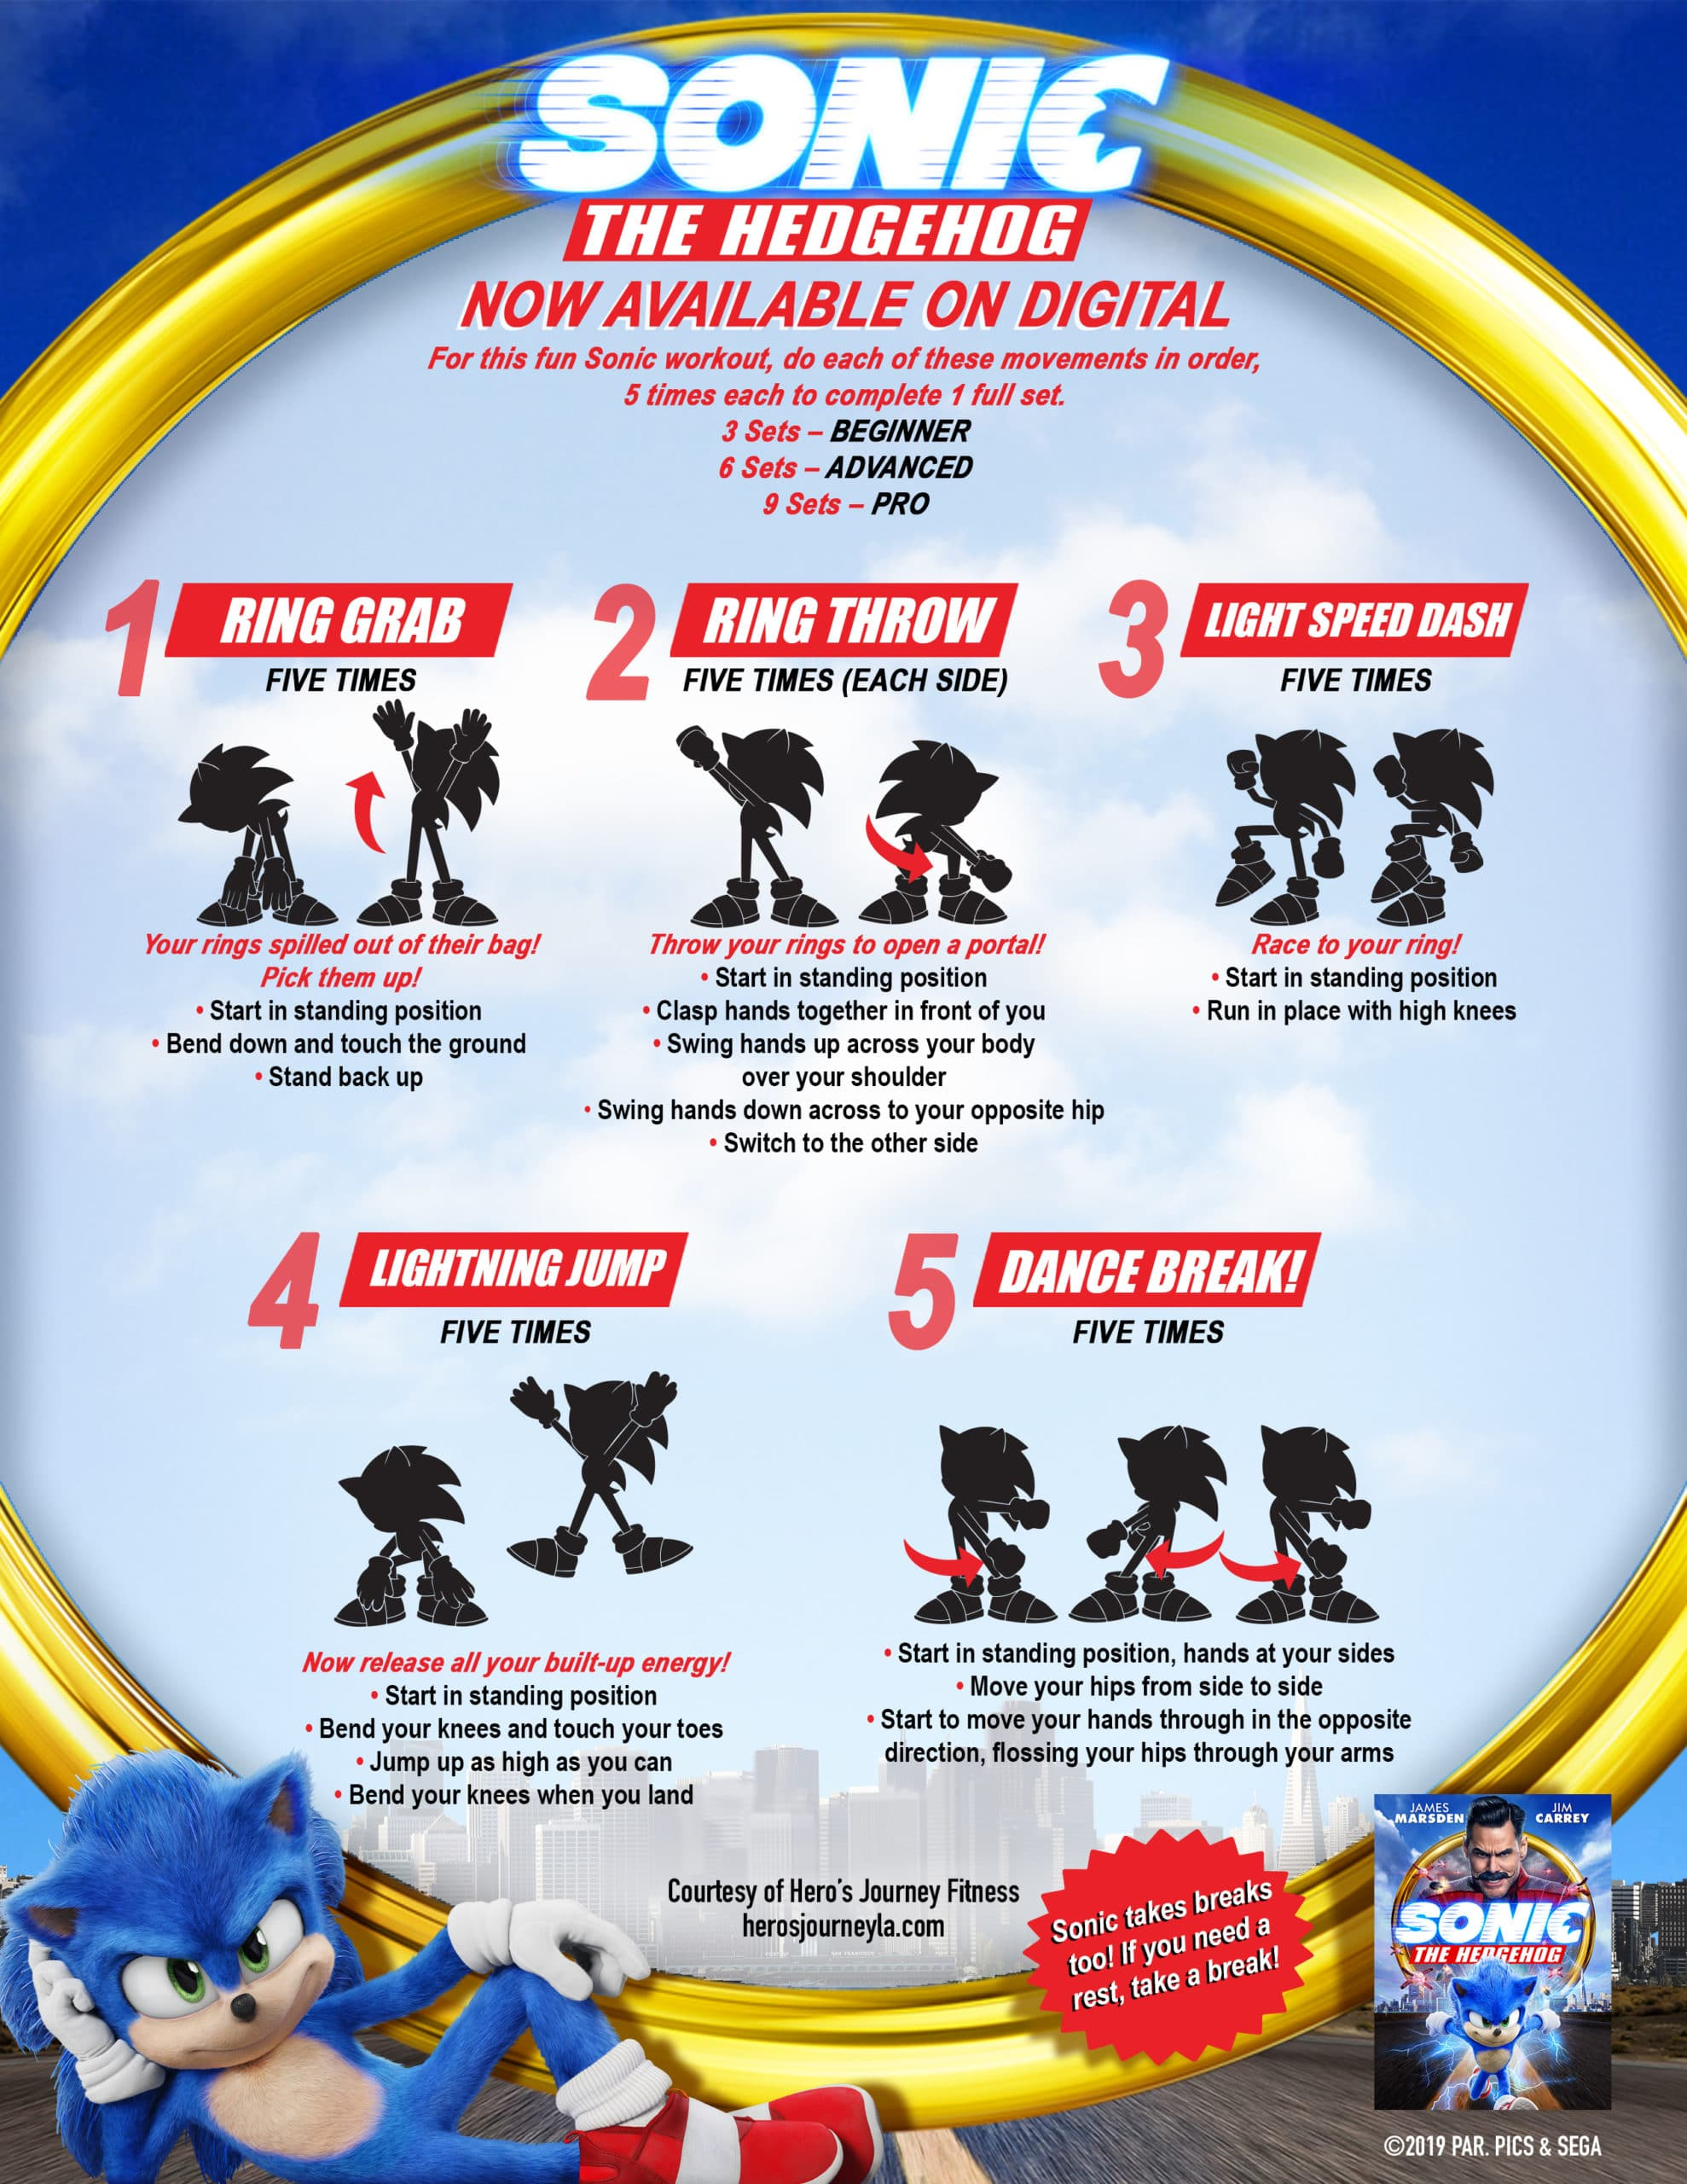 SONIC WORKOUT SHEET. Get ready for epic fun and super-sonic action when everyone's favorite hedgehog races home in the blockbuster hitSONIC THE HEDGEHOG. SONIC THE HEDGEHOGis now available on 4K Ultra HD, Blu-ray, DVD, Digital and for rental On Demand or disc fromParamount Home Entertainment.